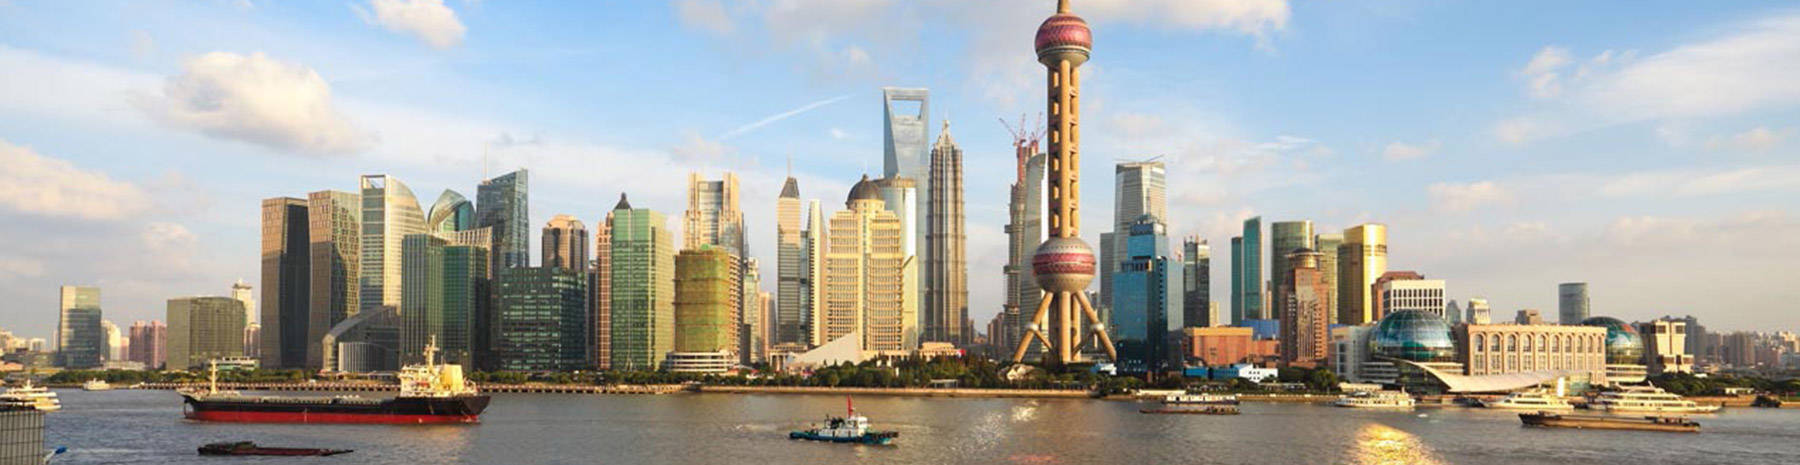 Chinese City Scape